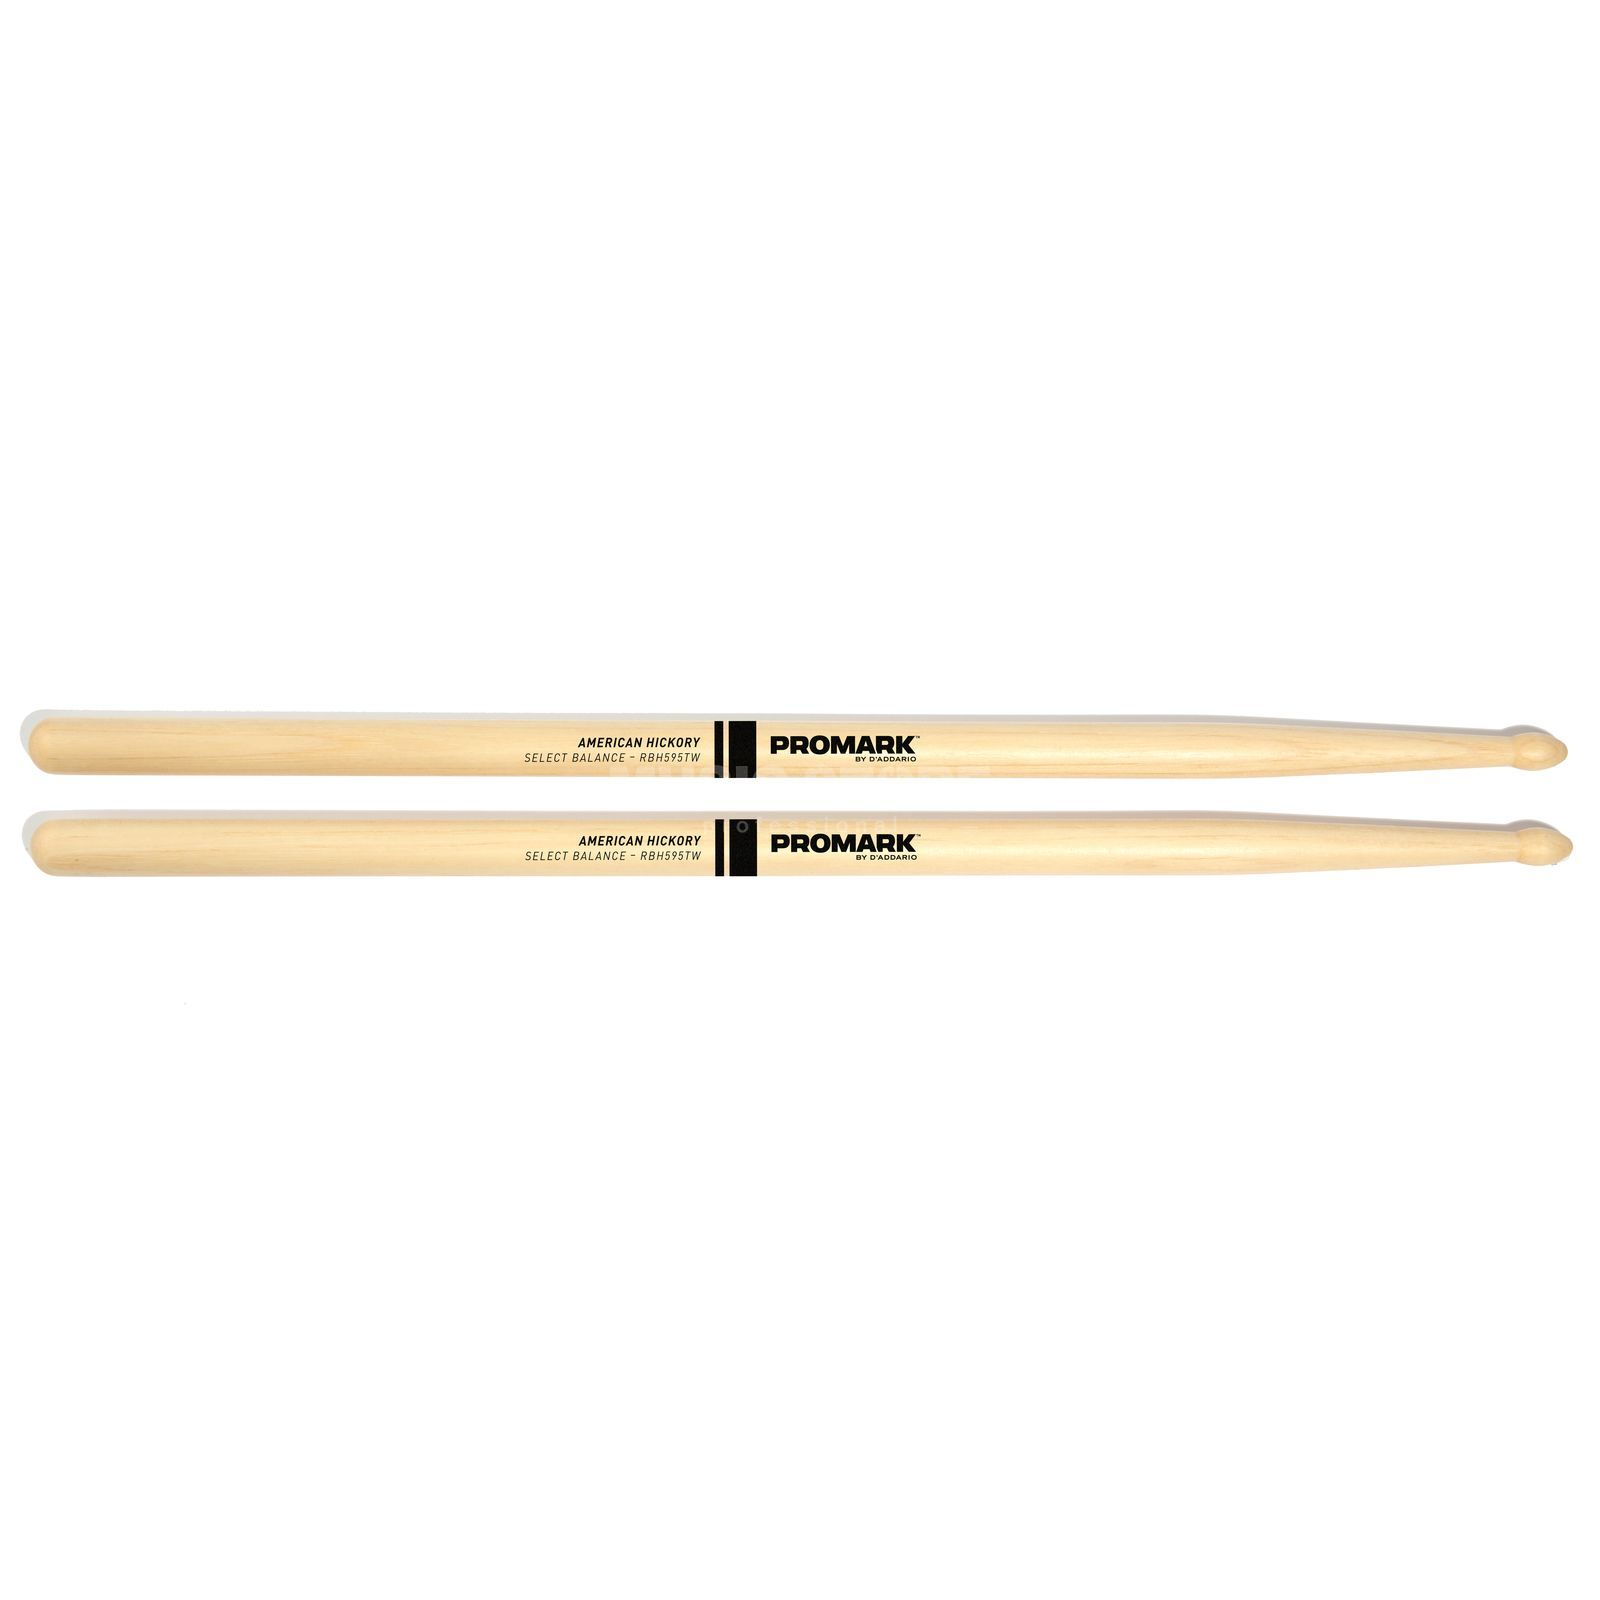 PRO-MARK Select Balance Sticks RBH595TW Rebound Balance, Wood Tip Produktbillede